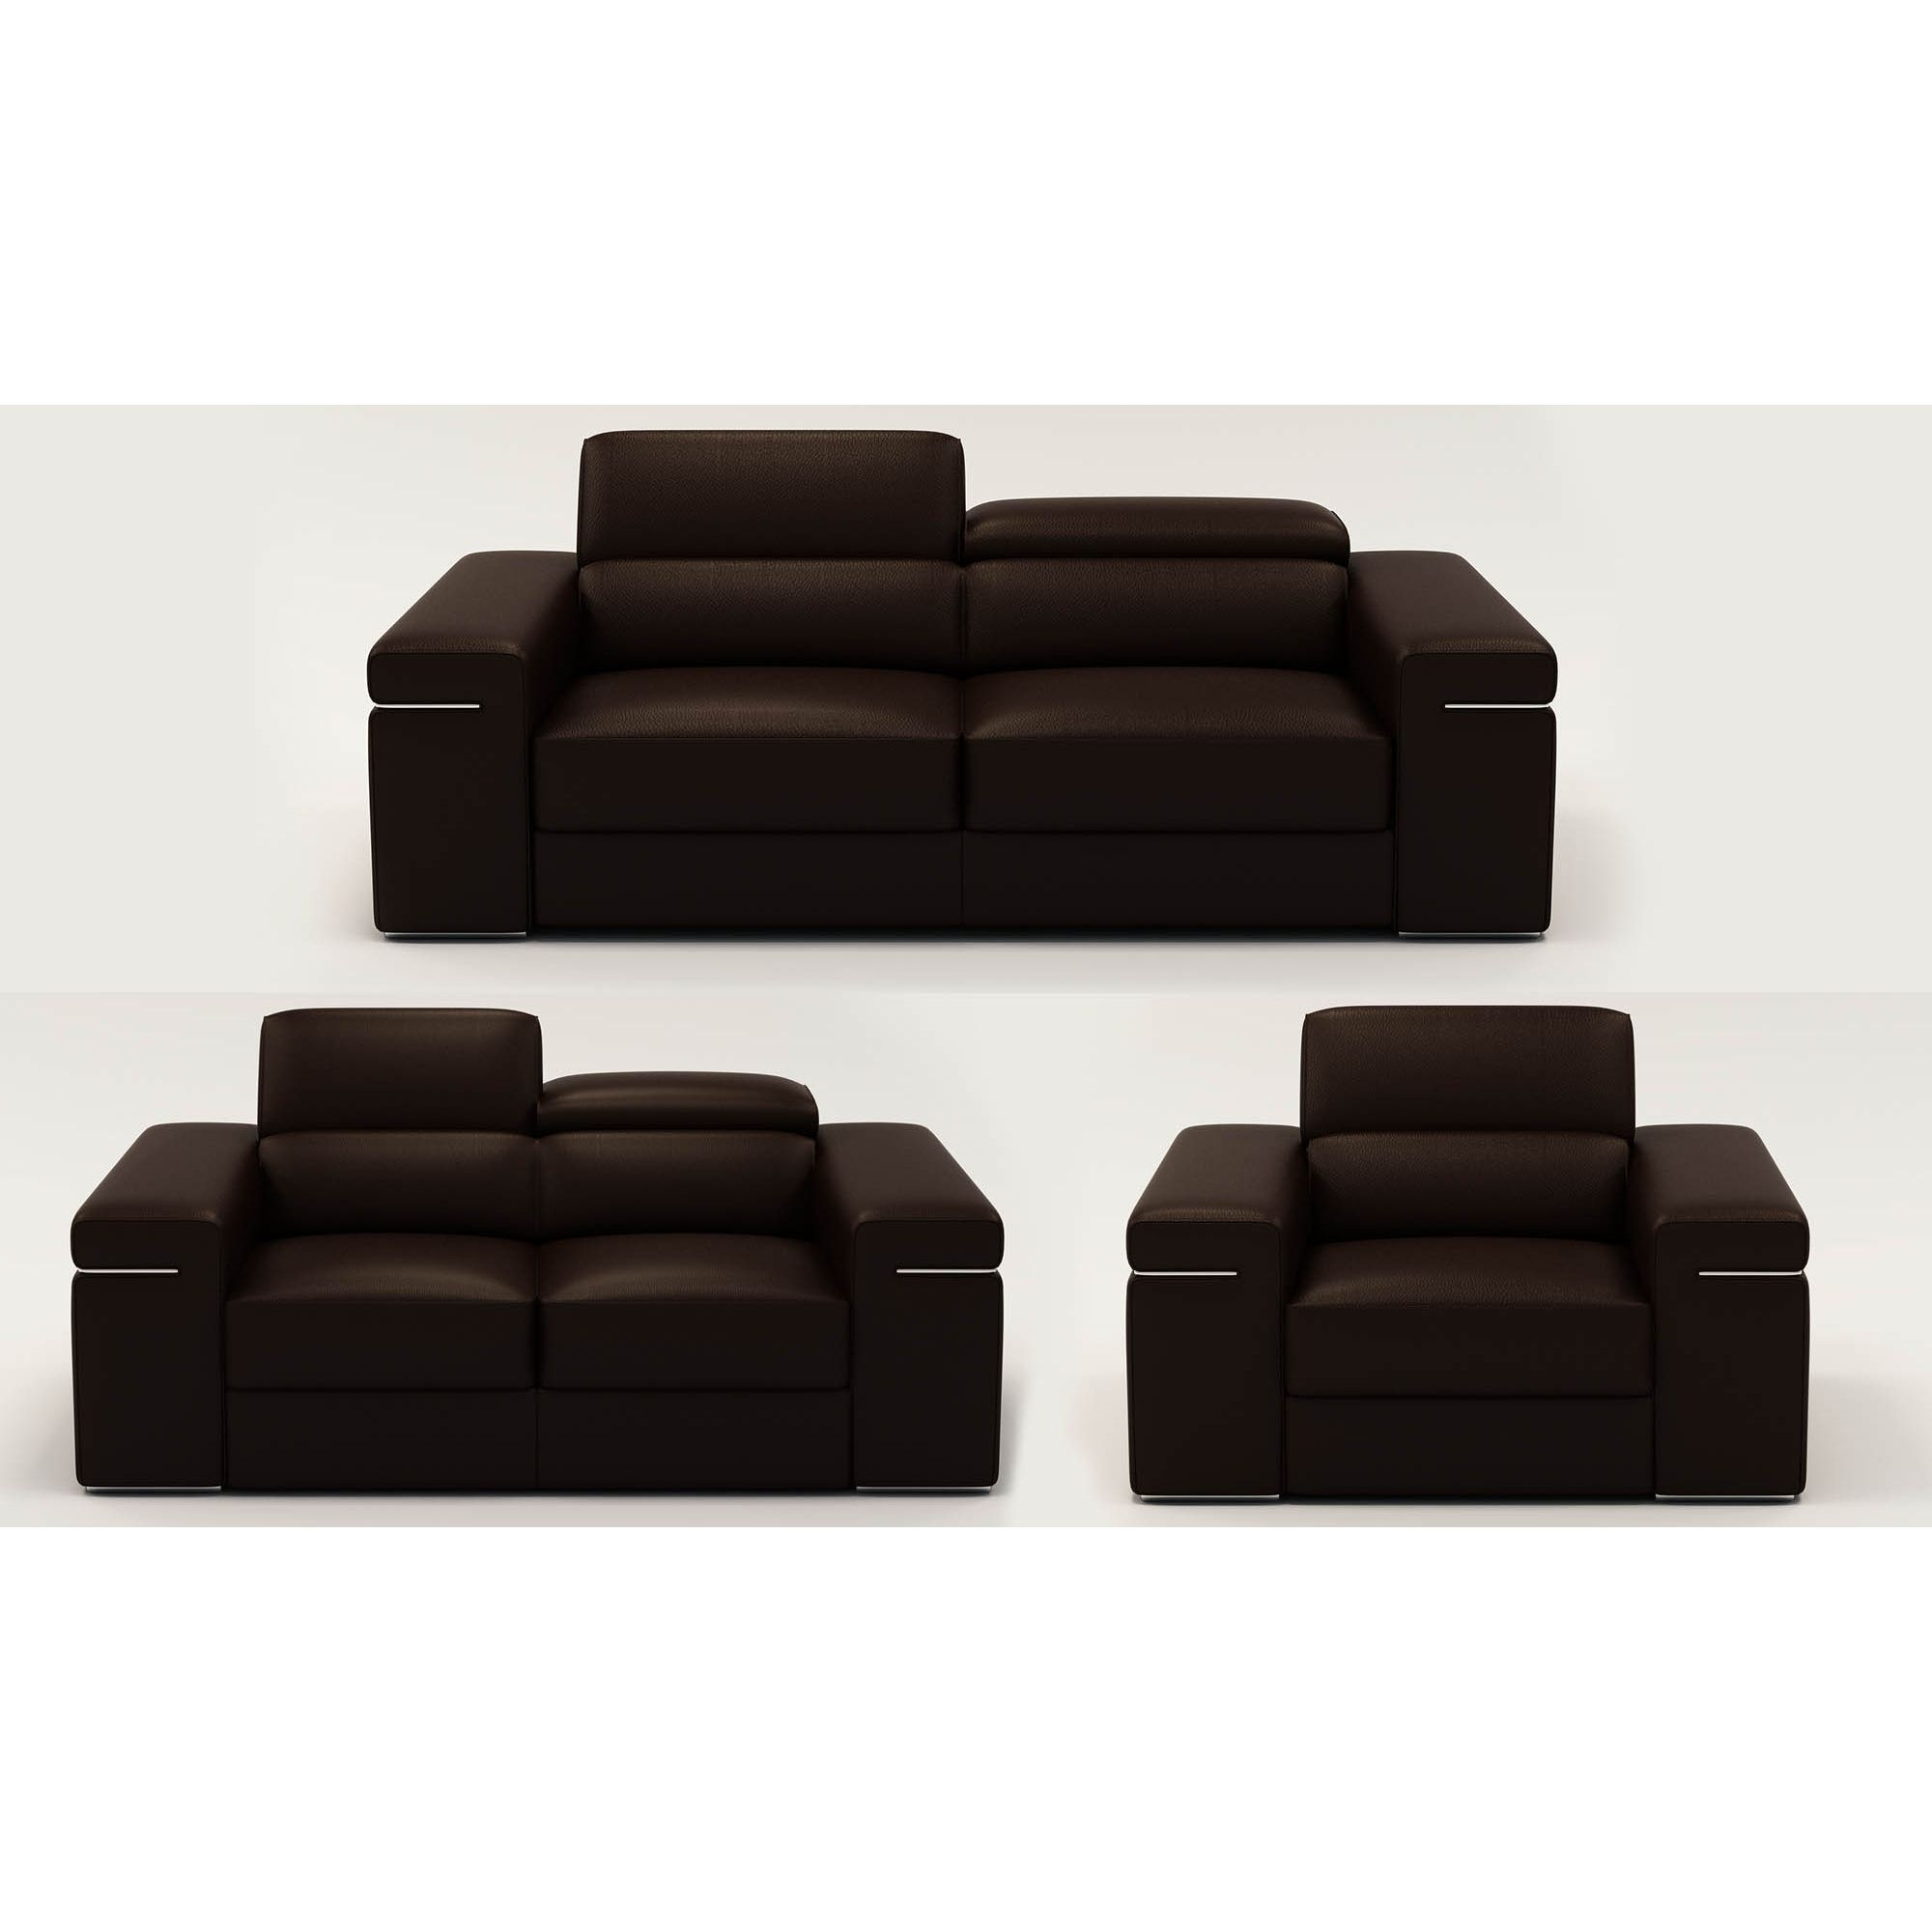 deco in 3 ensemble canape 3 2 1 places en cuir marron can 3 2 1 marron